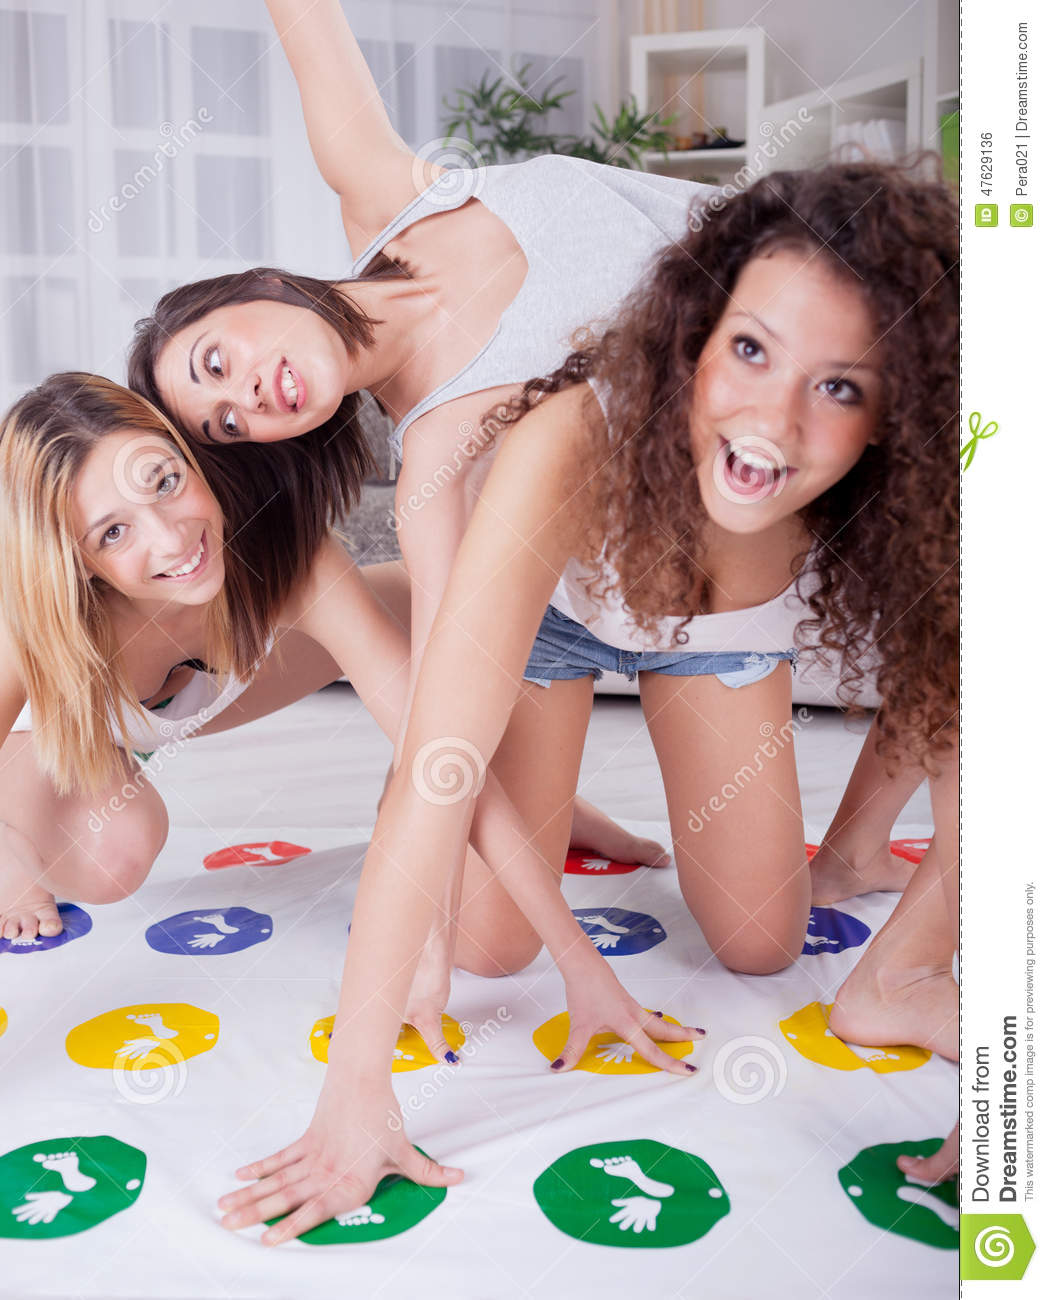 fun teen girly games